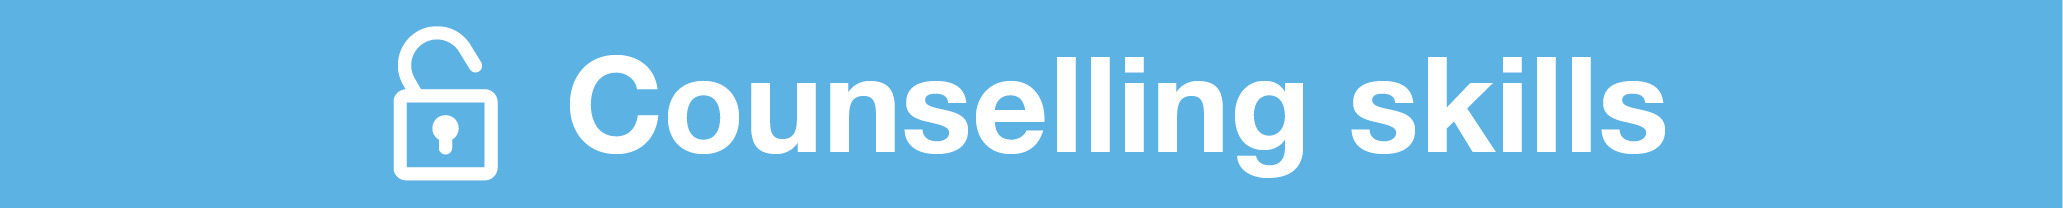 Counselling Skills Banner